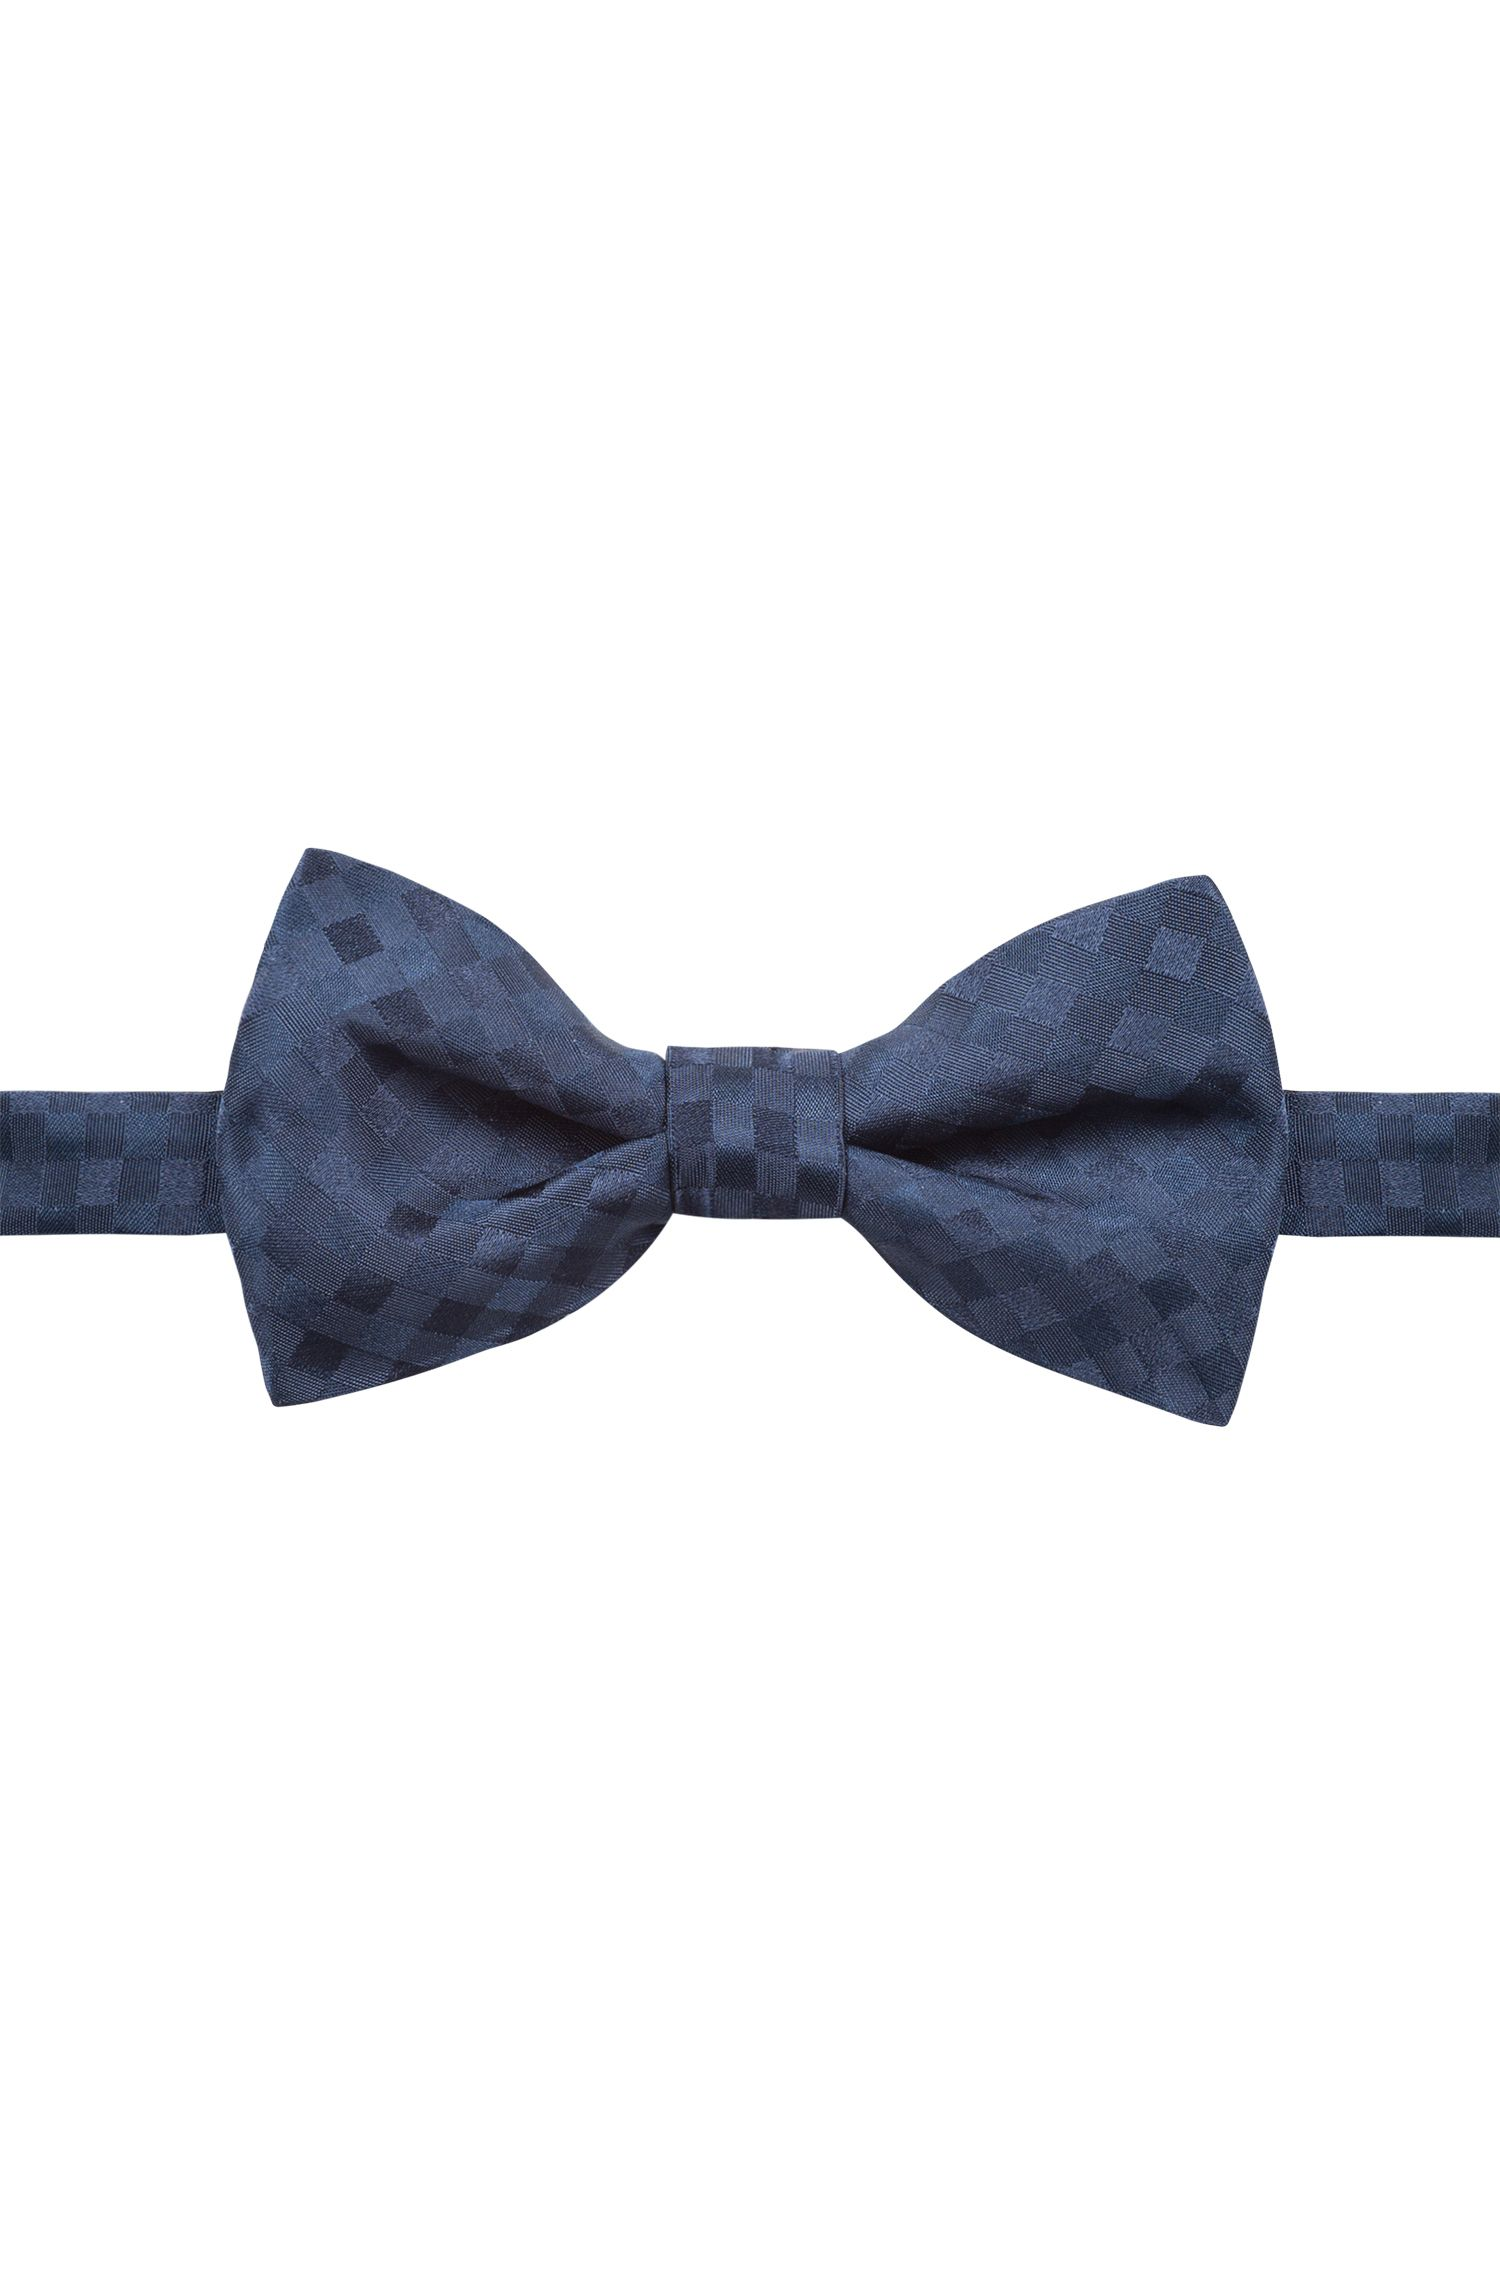 Silk-jacquard bow tie with plain check